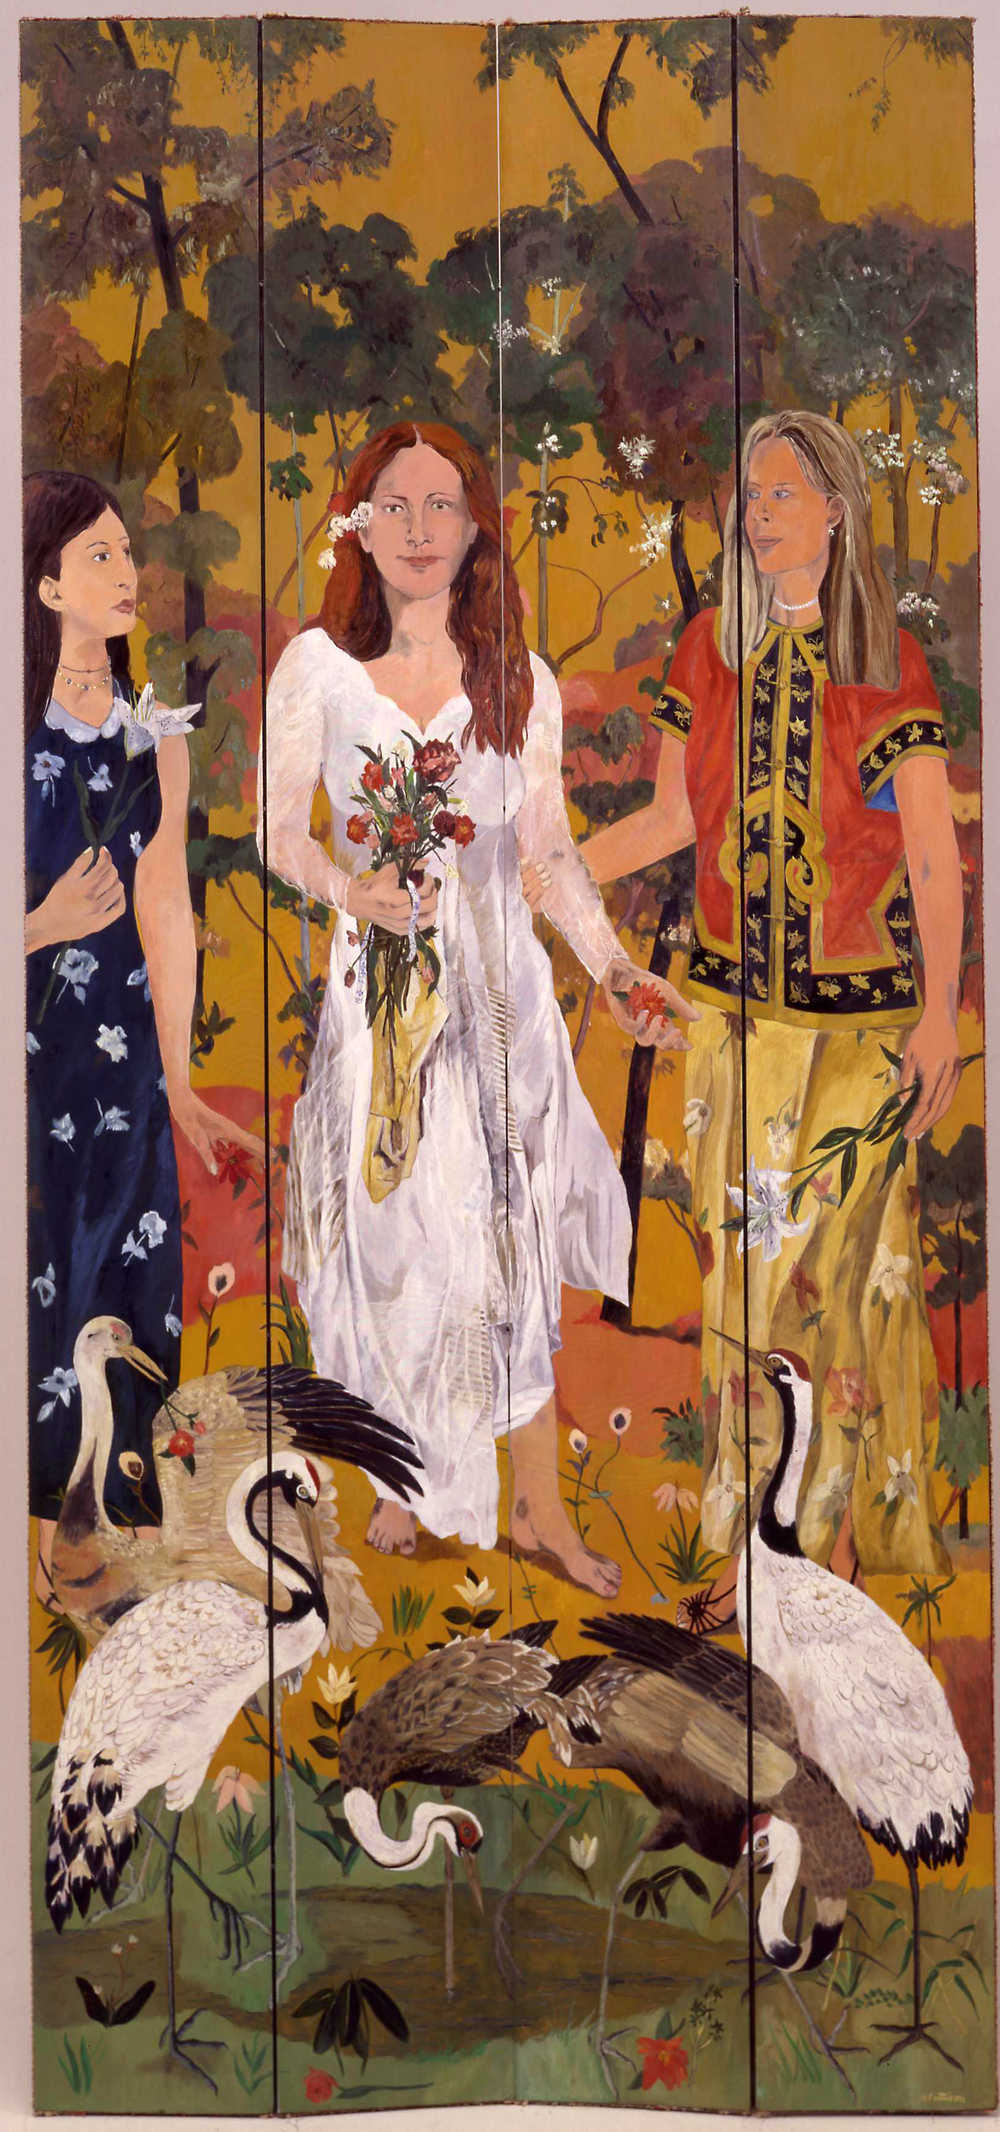 Entry of the Bride, oil on wood screen panels, 96 x 44 inches